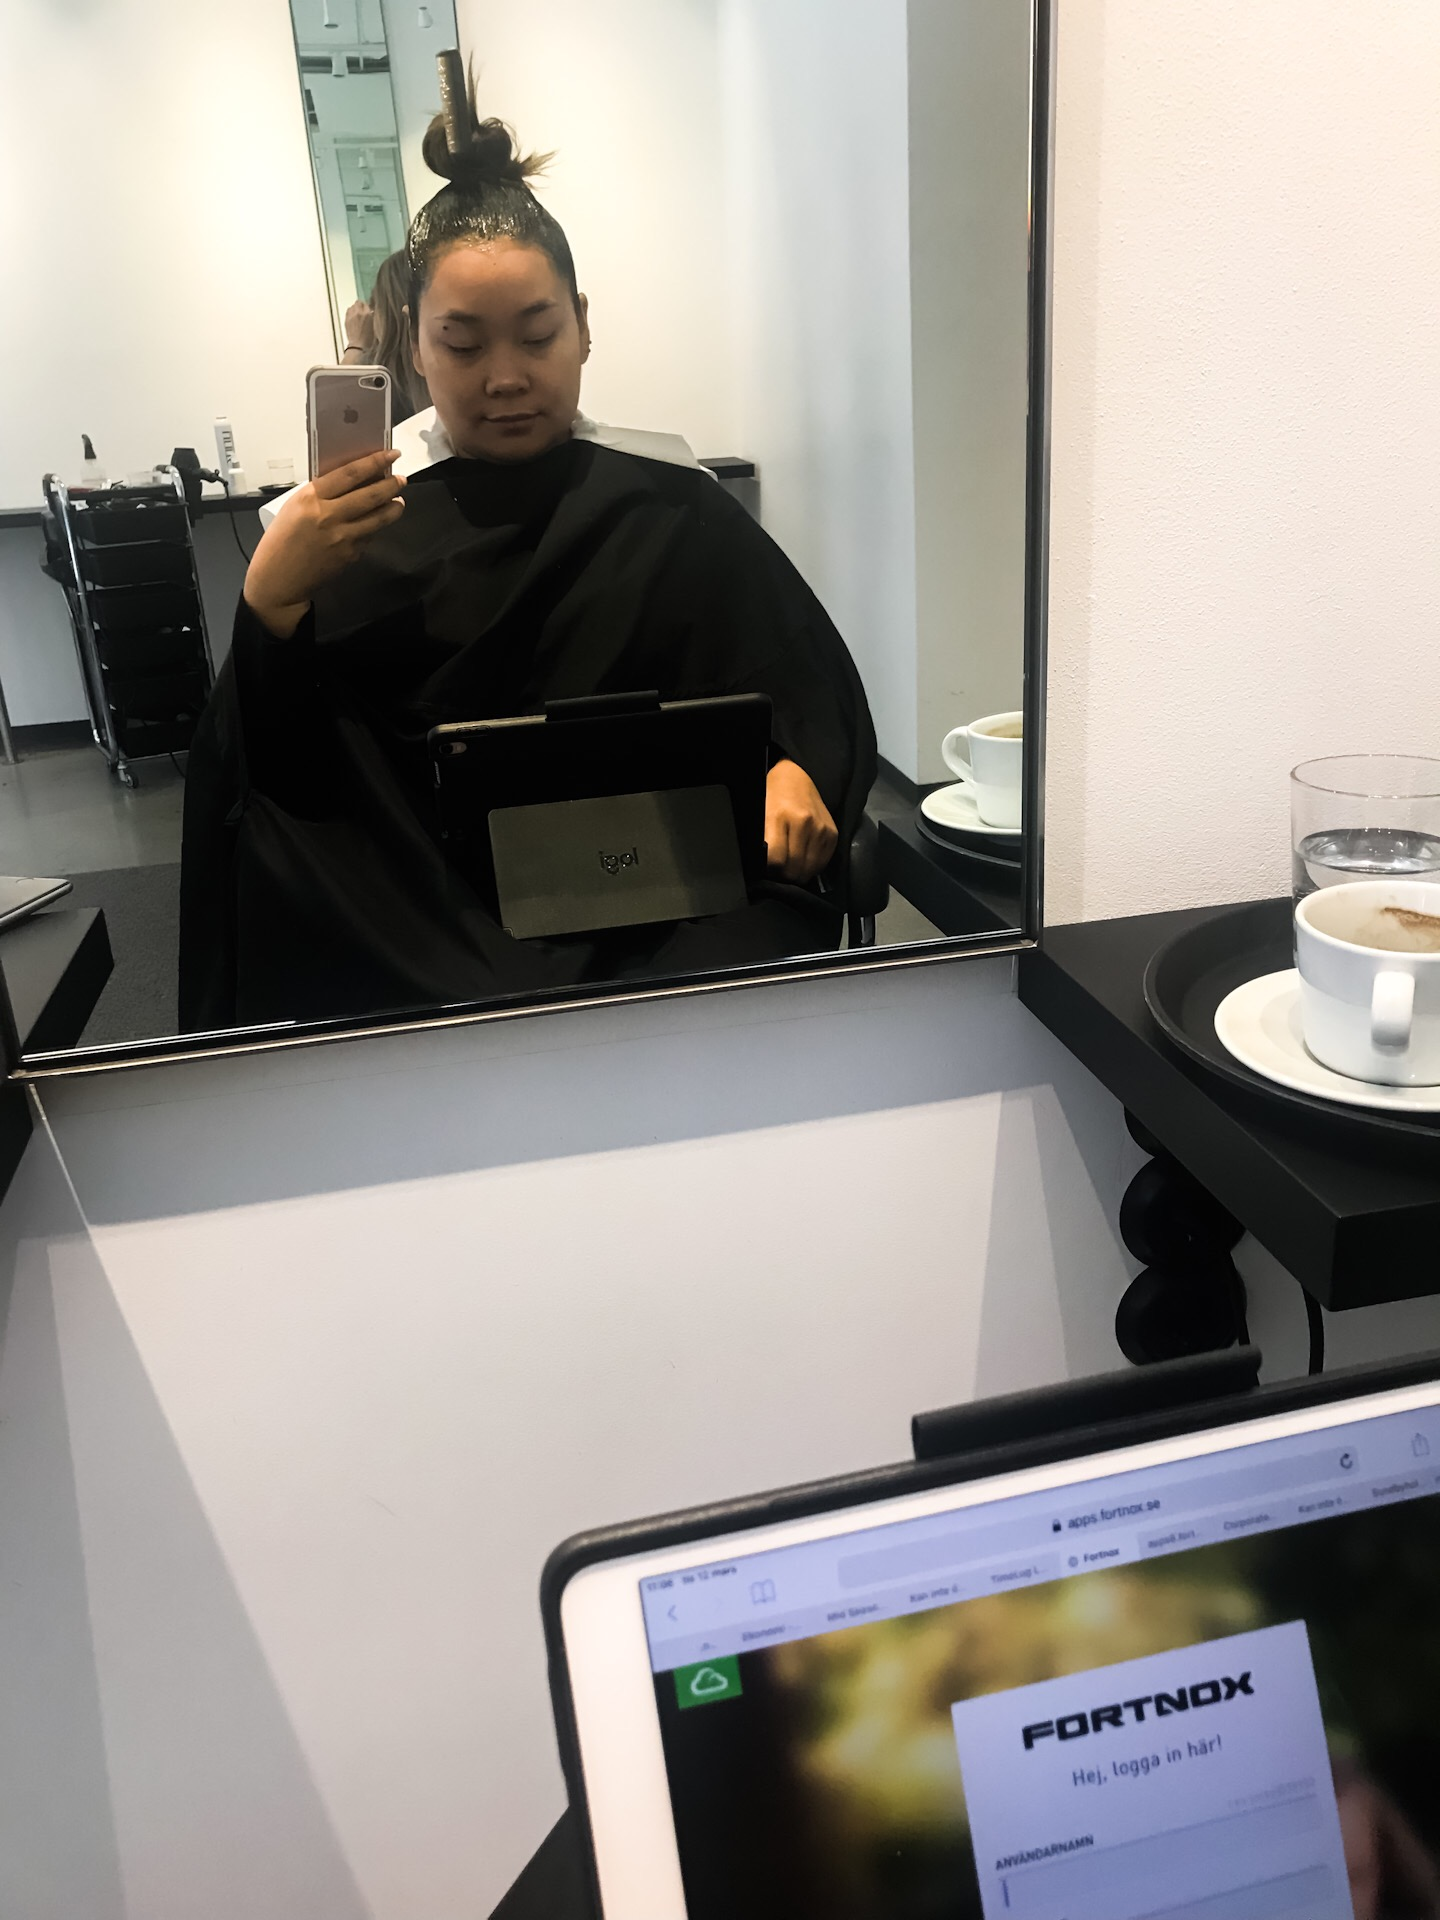 …but you still want to be pretty! - Why not work while at the hairdresser? As I usually get my hair colored/bleached/dyed I end up in that chair for hours, a perfect opportunity to work..